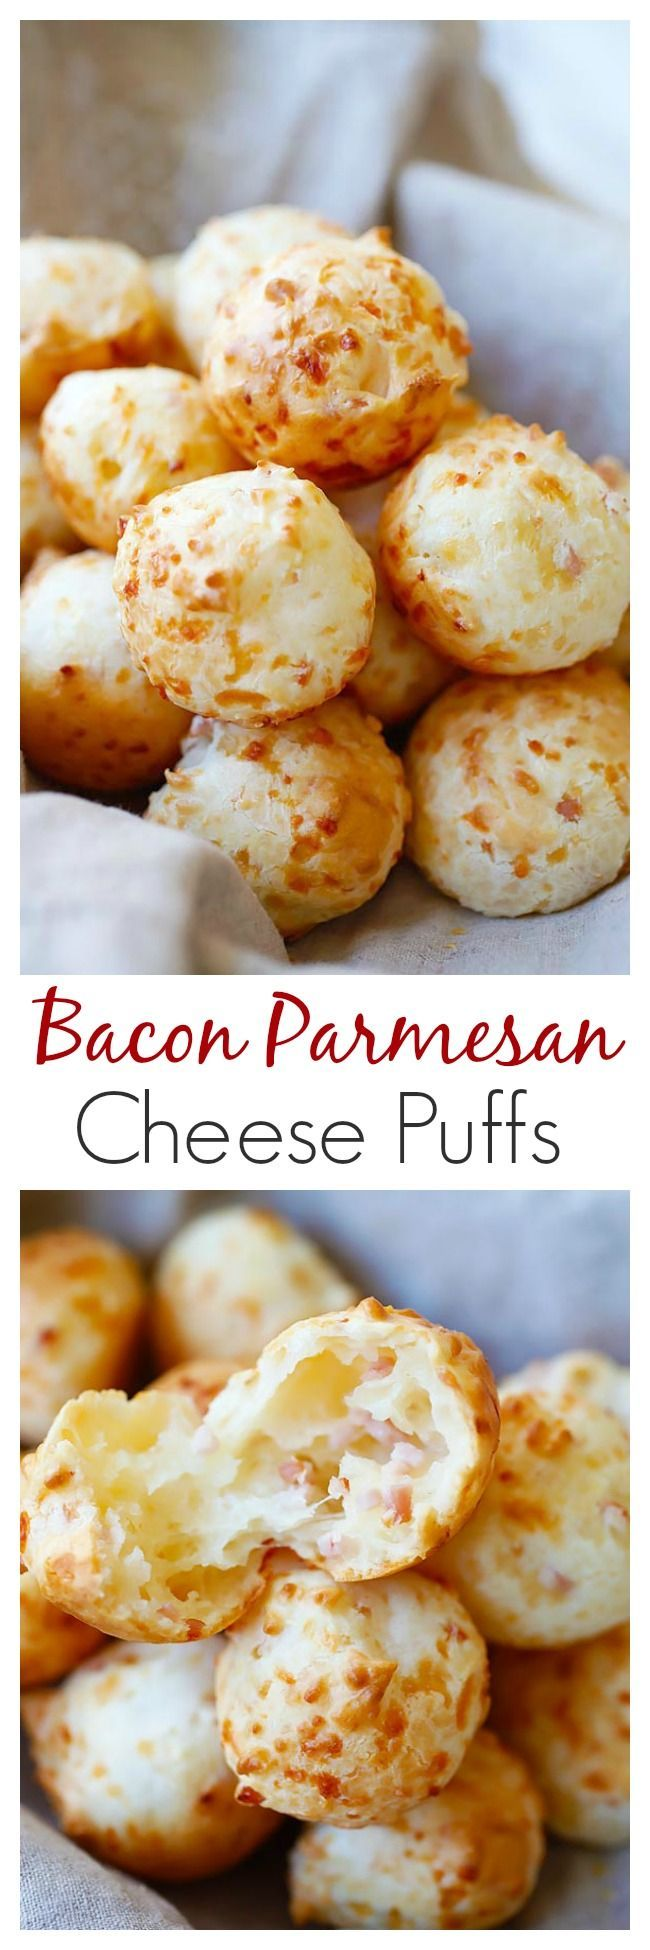 Photo of Bacon Parmesan Gougeres (Cheese Puffs)